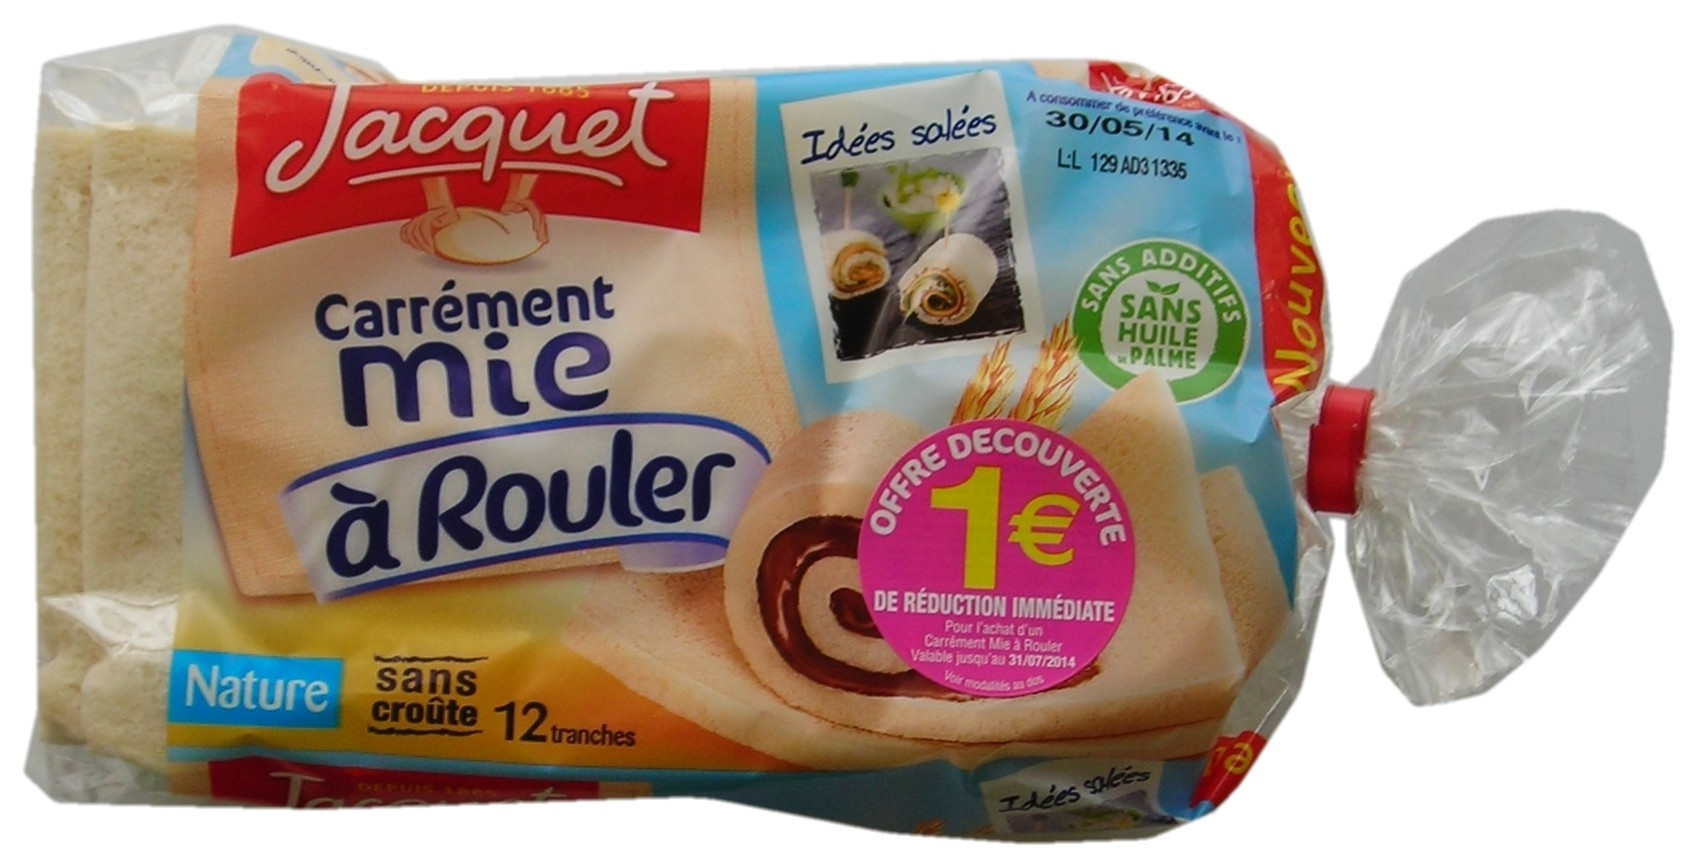 Jacquet white bread to roll